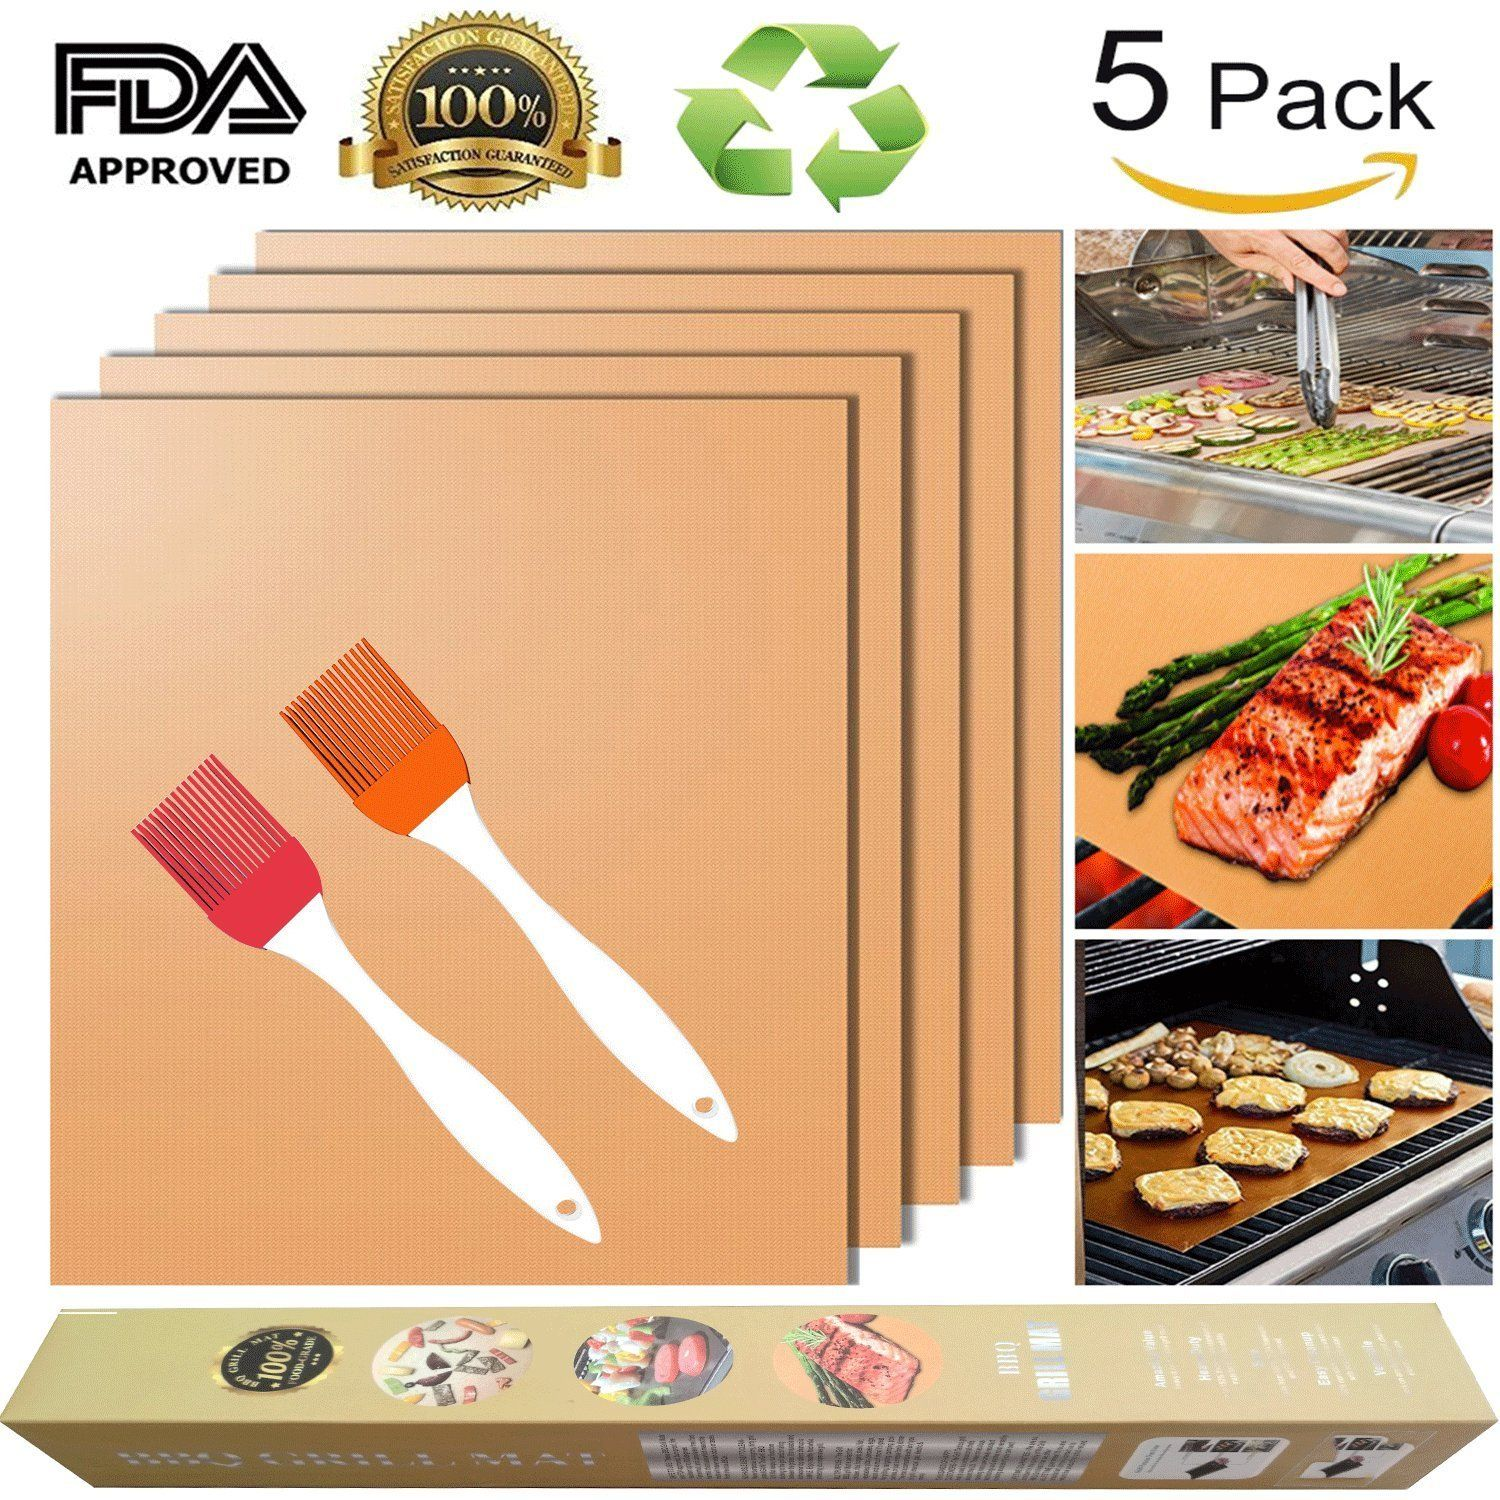 Top 10 Best Copper Grill Mat In 2020 Reviews And Purchasing Tips For Buyers Hqreview Cooking Accessories Grill Mats Baking Mat